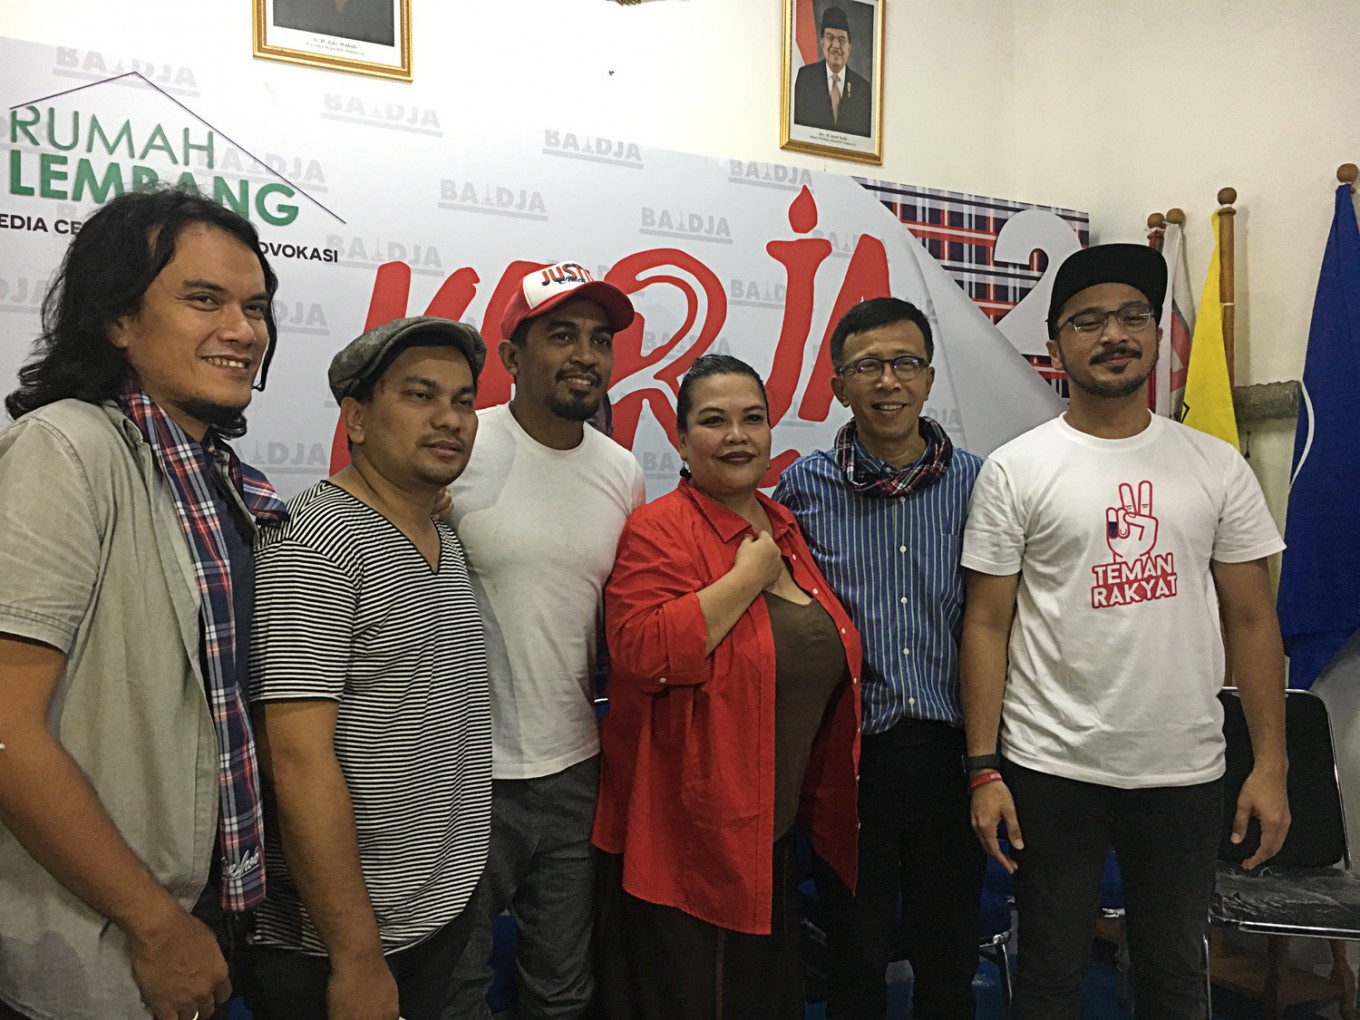 Renowned musicians launch song in support of Ahok